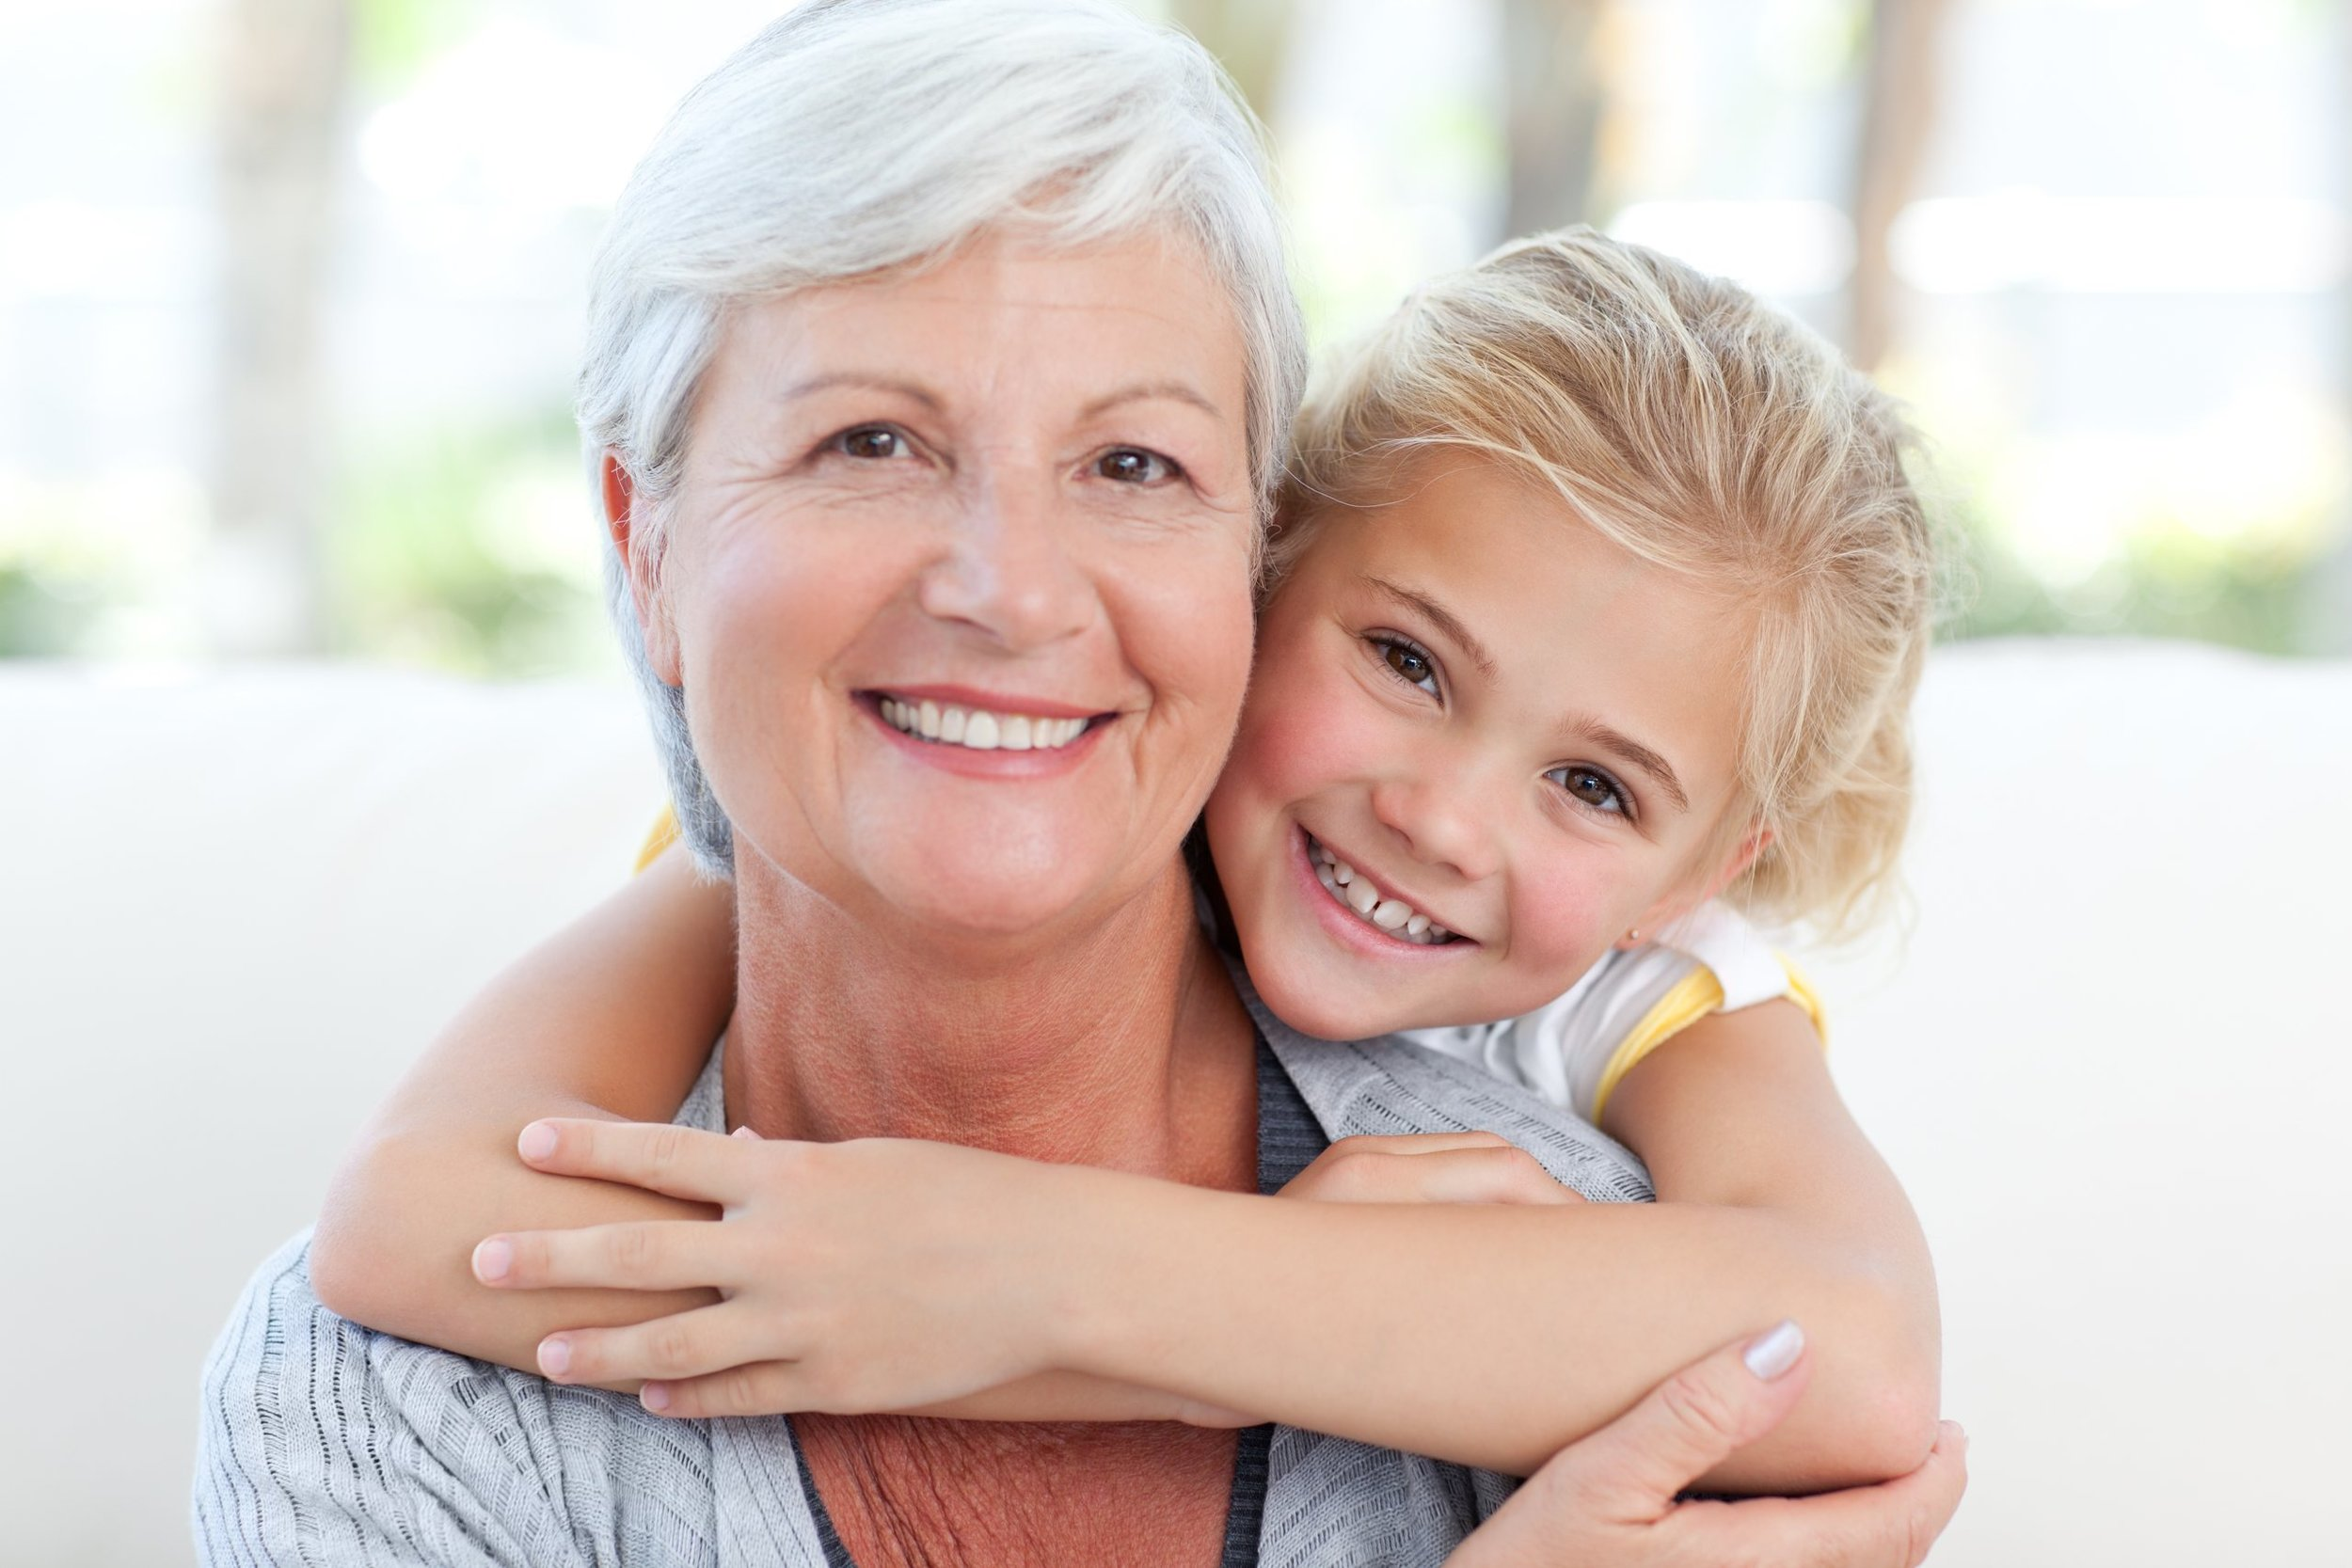 grand mother and grand daughter smiling